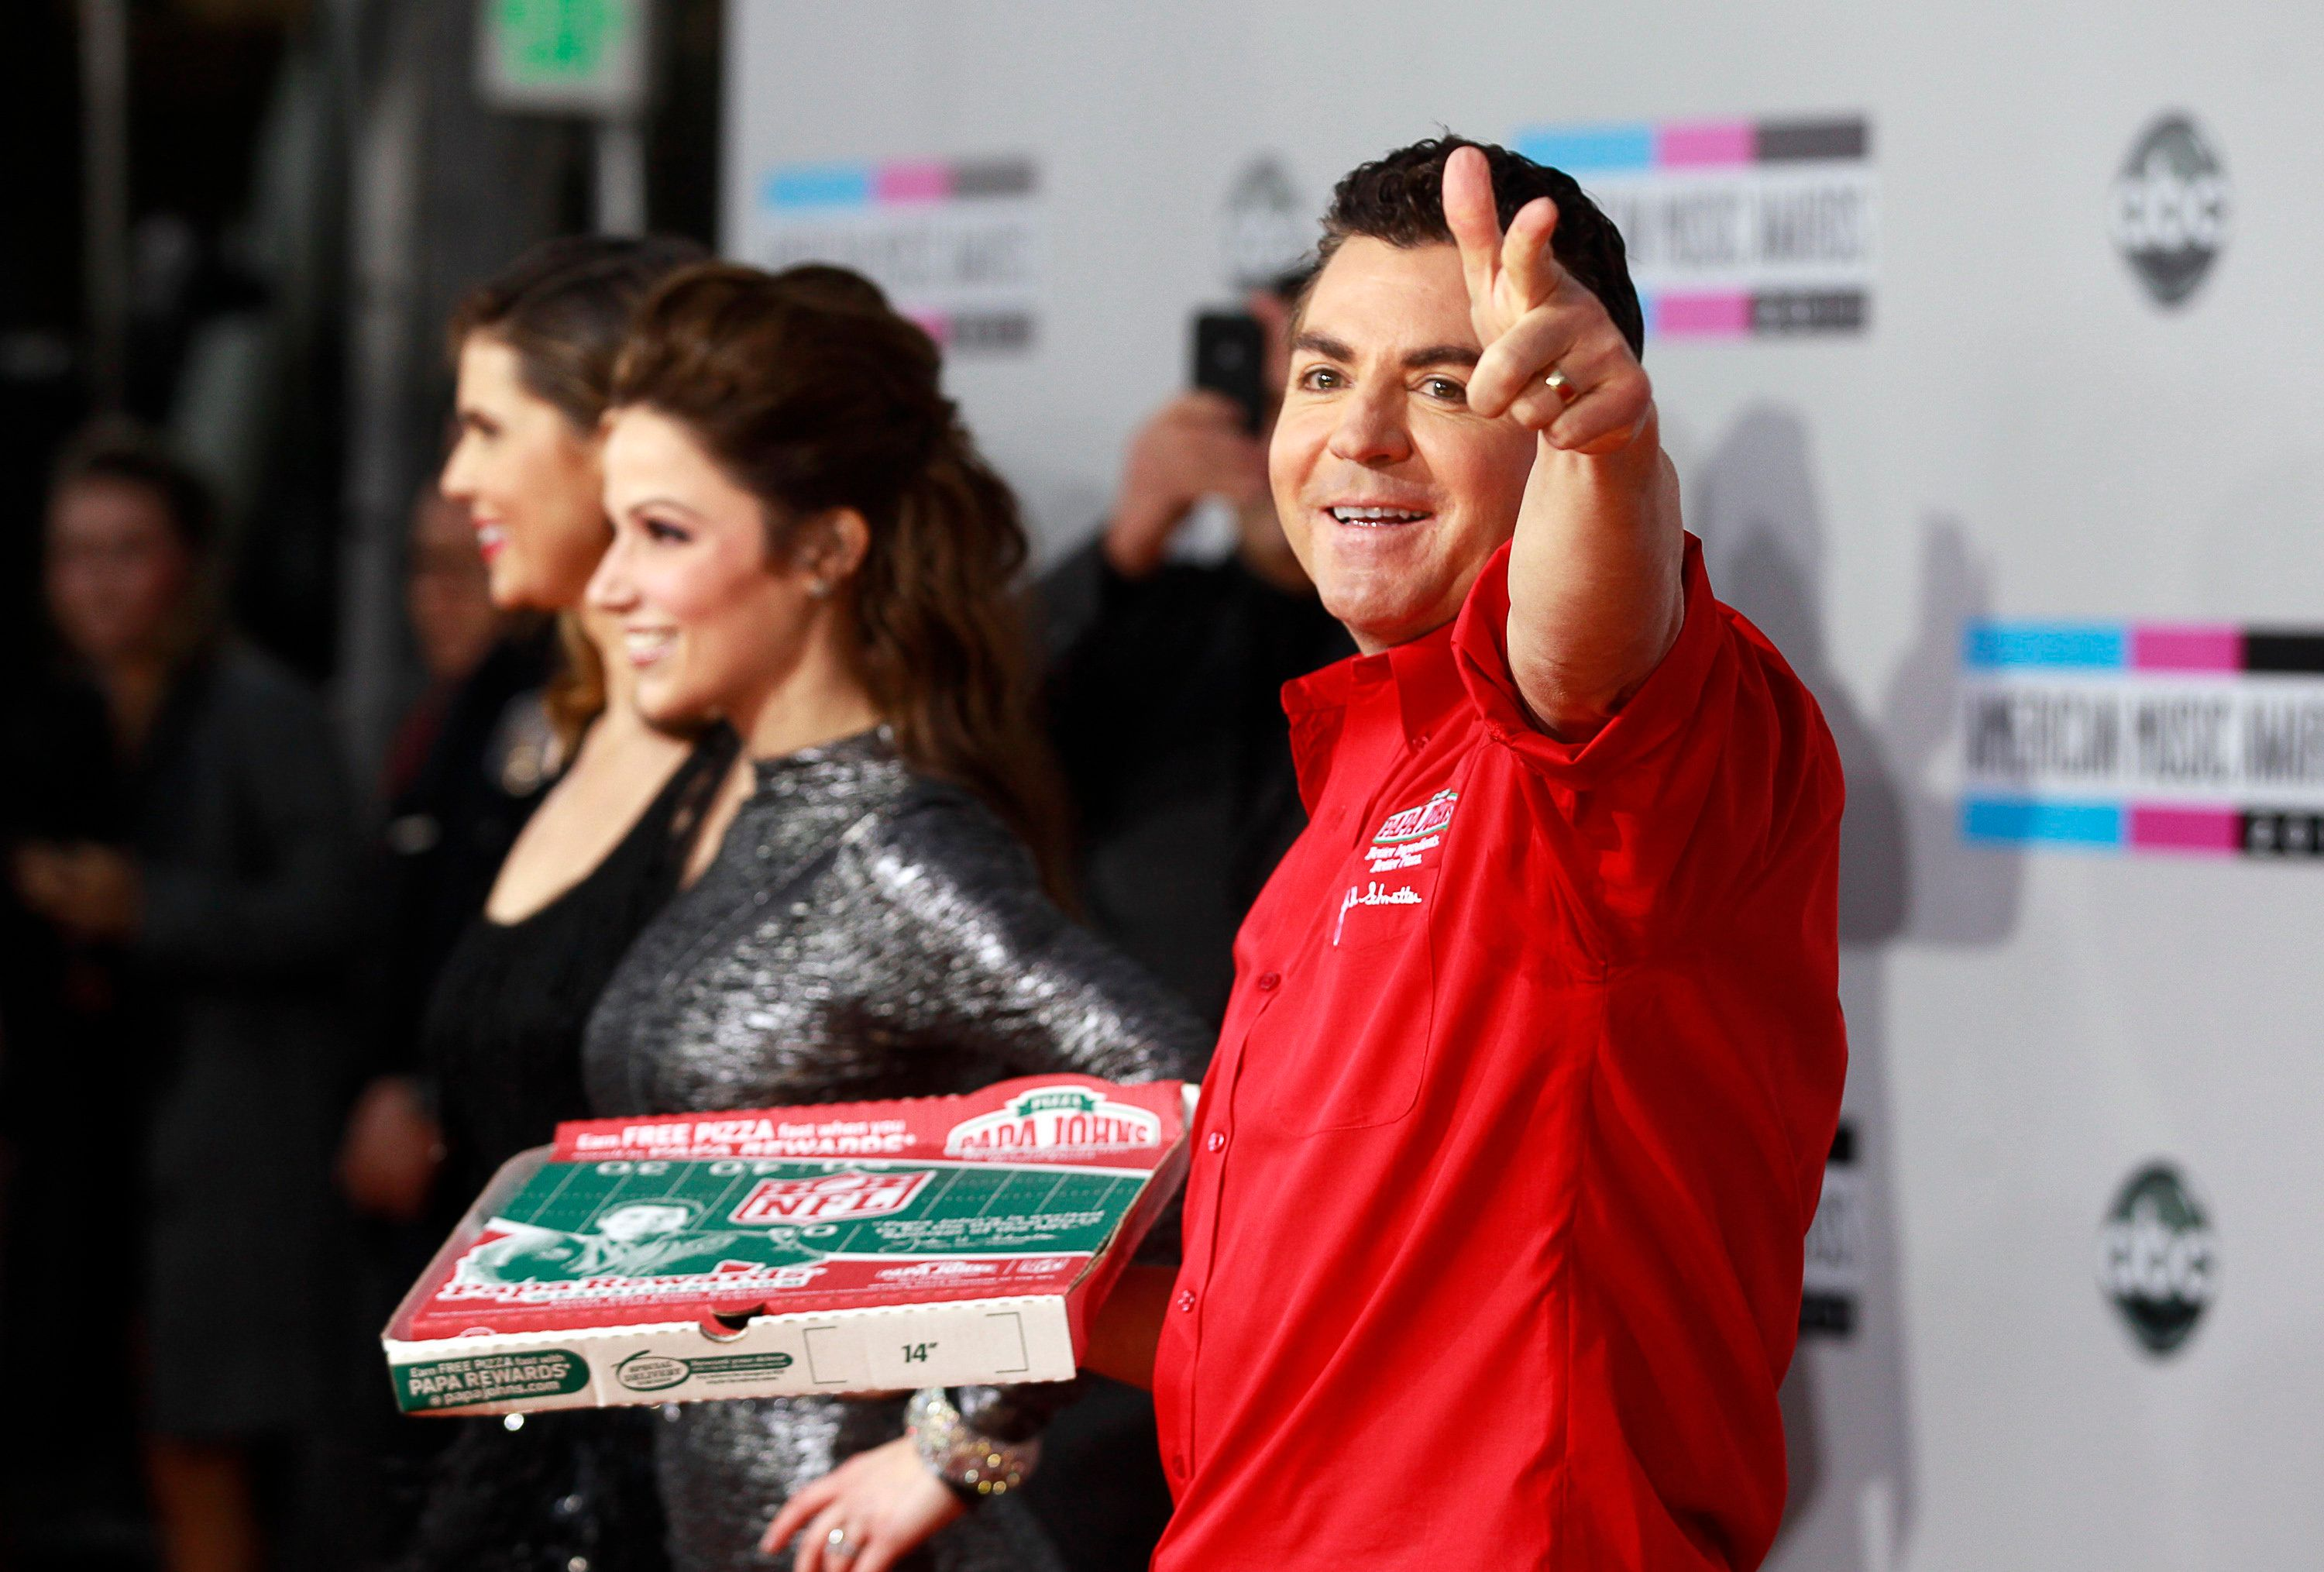 Papa John's founder John Schnatter to step down as CEO